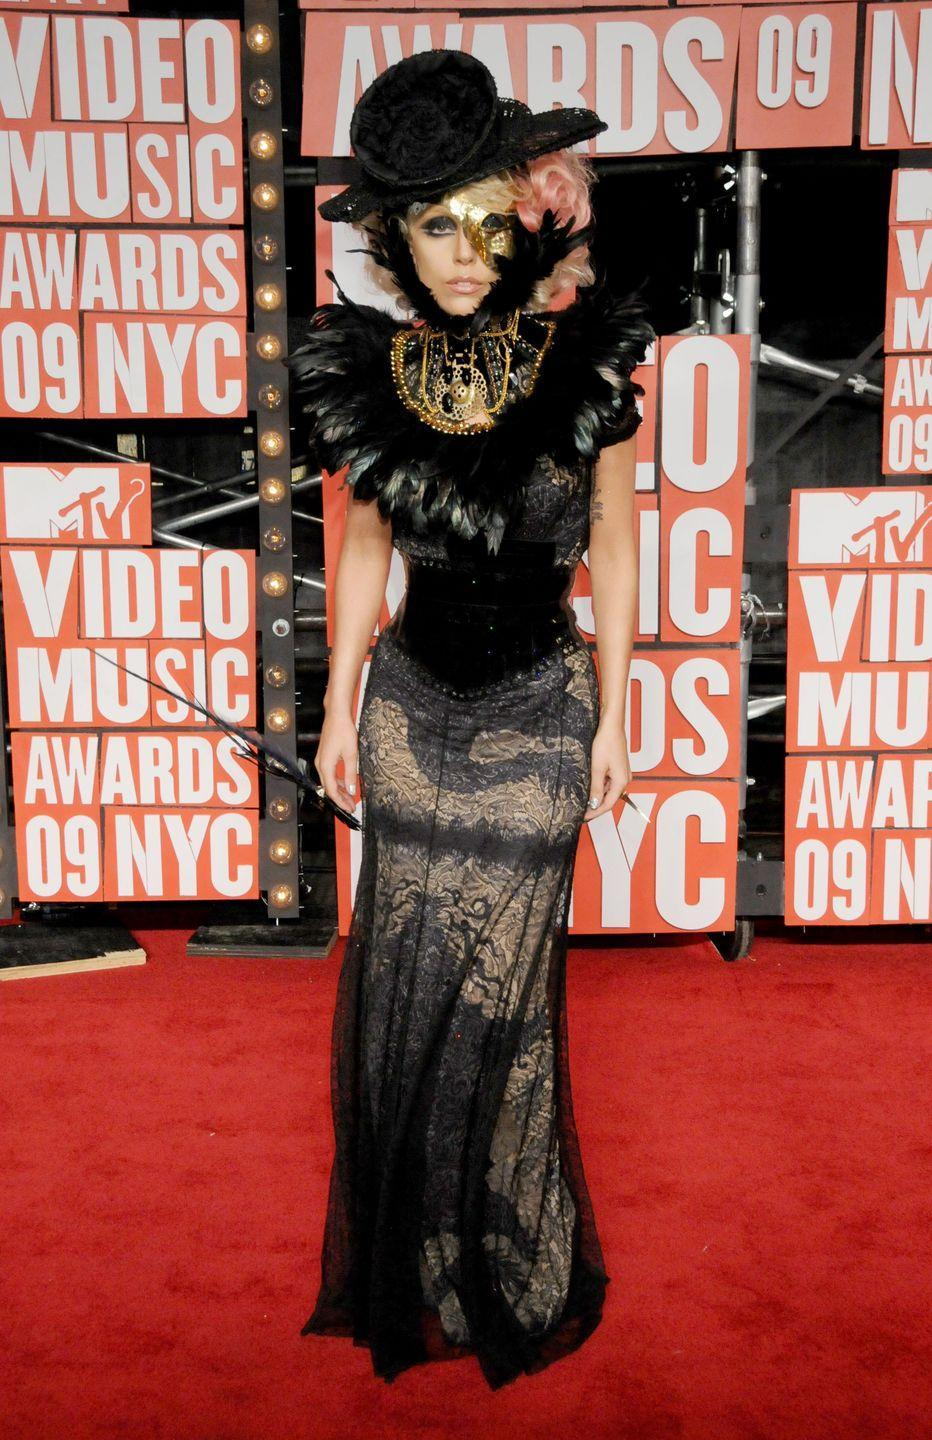 <p>Lady Gaga showed up to the 2009 Video Music Awards in typical Lady Gaga form - weird but wonderful.</p>